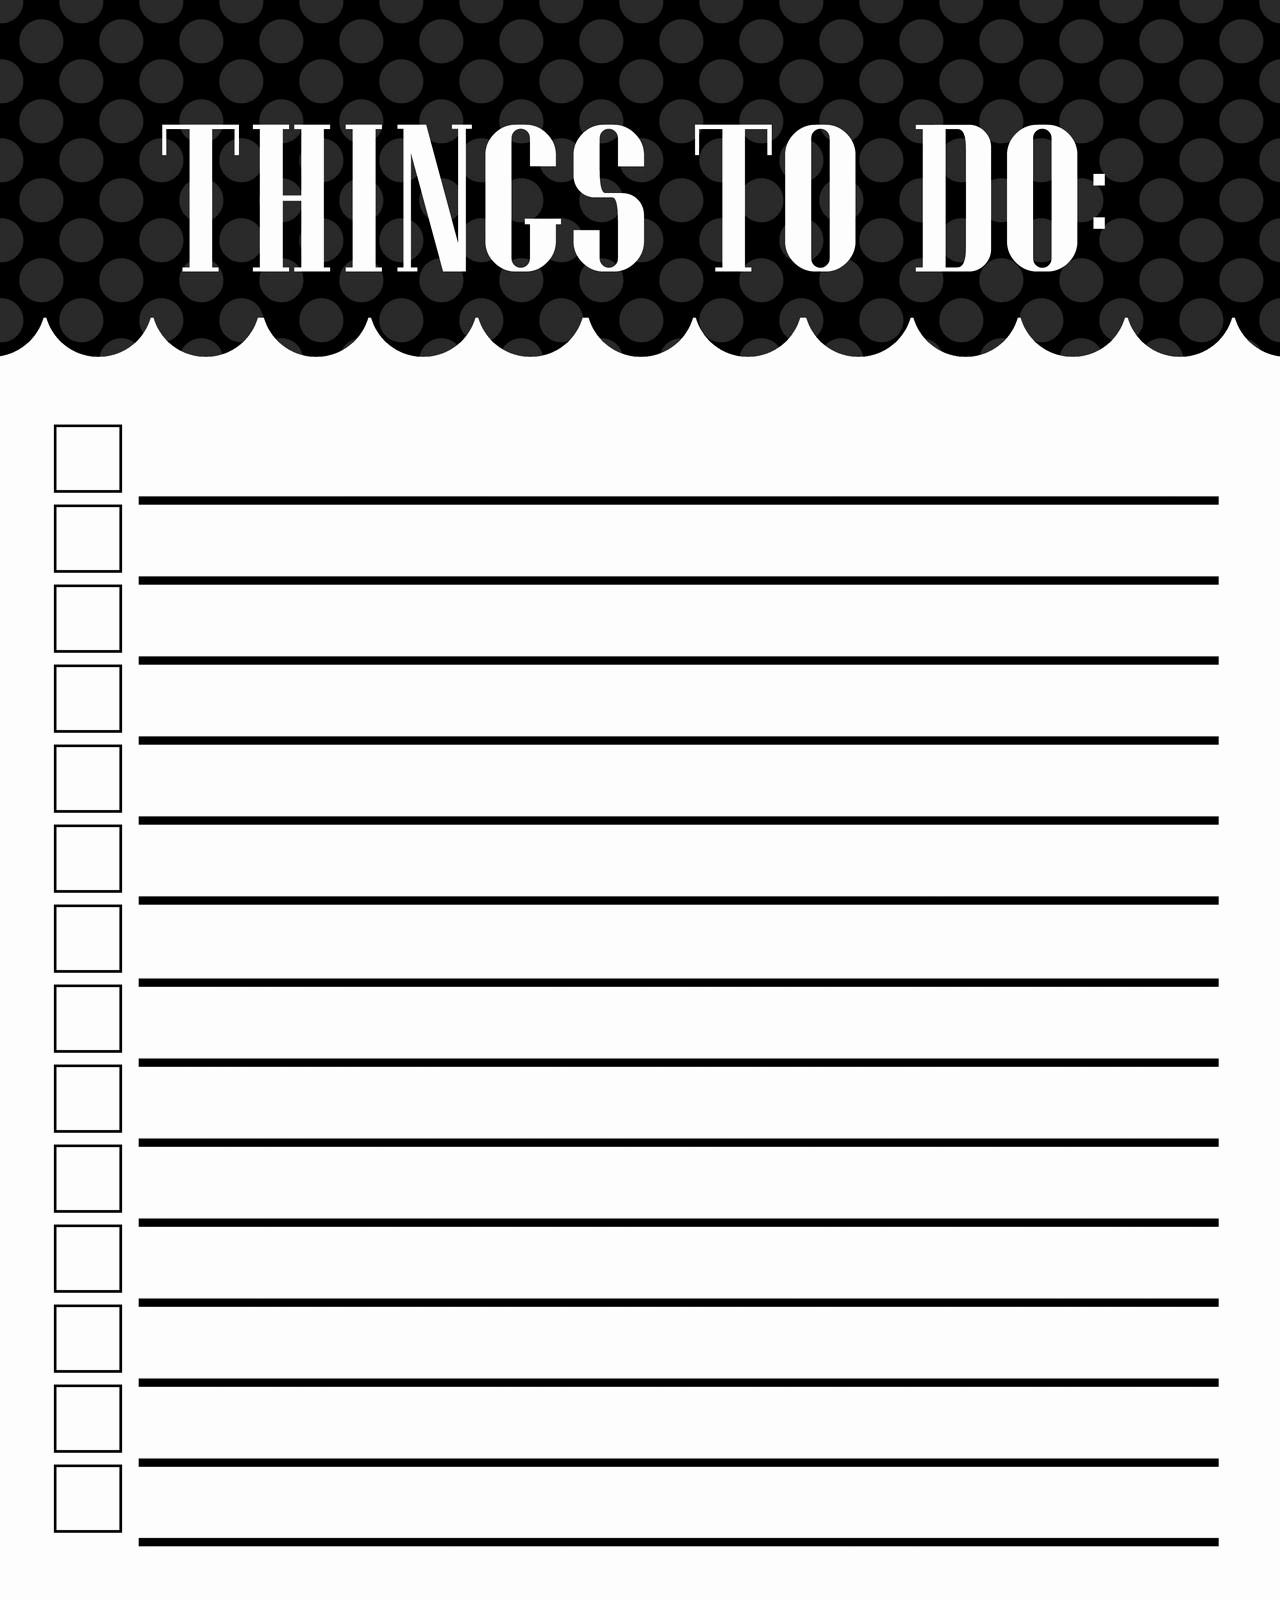 Printable Things to Do Lists Elegant Mckell S Closet to Do List